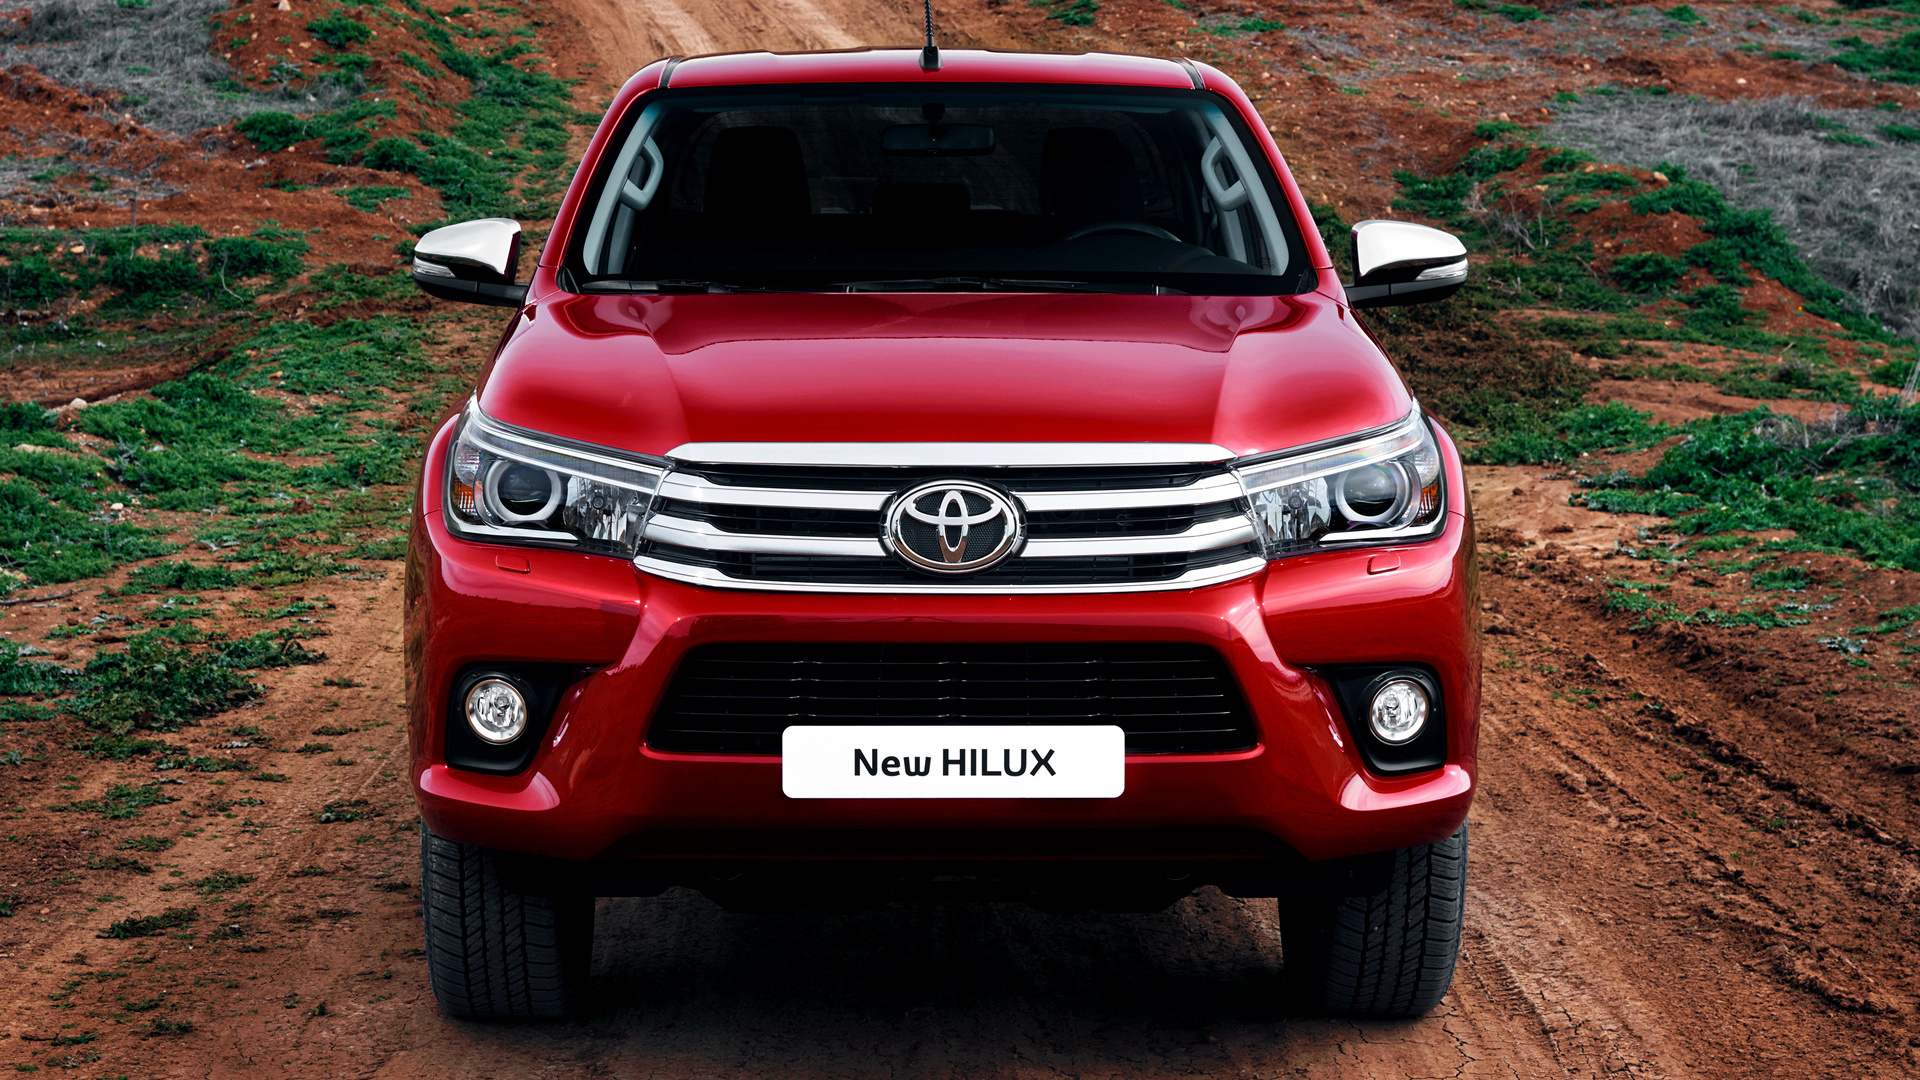 Toyota Hilux Invincible Double Cab (2015) Wallpapers and ...